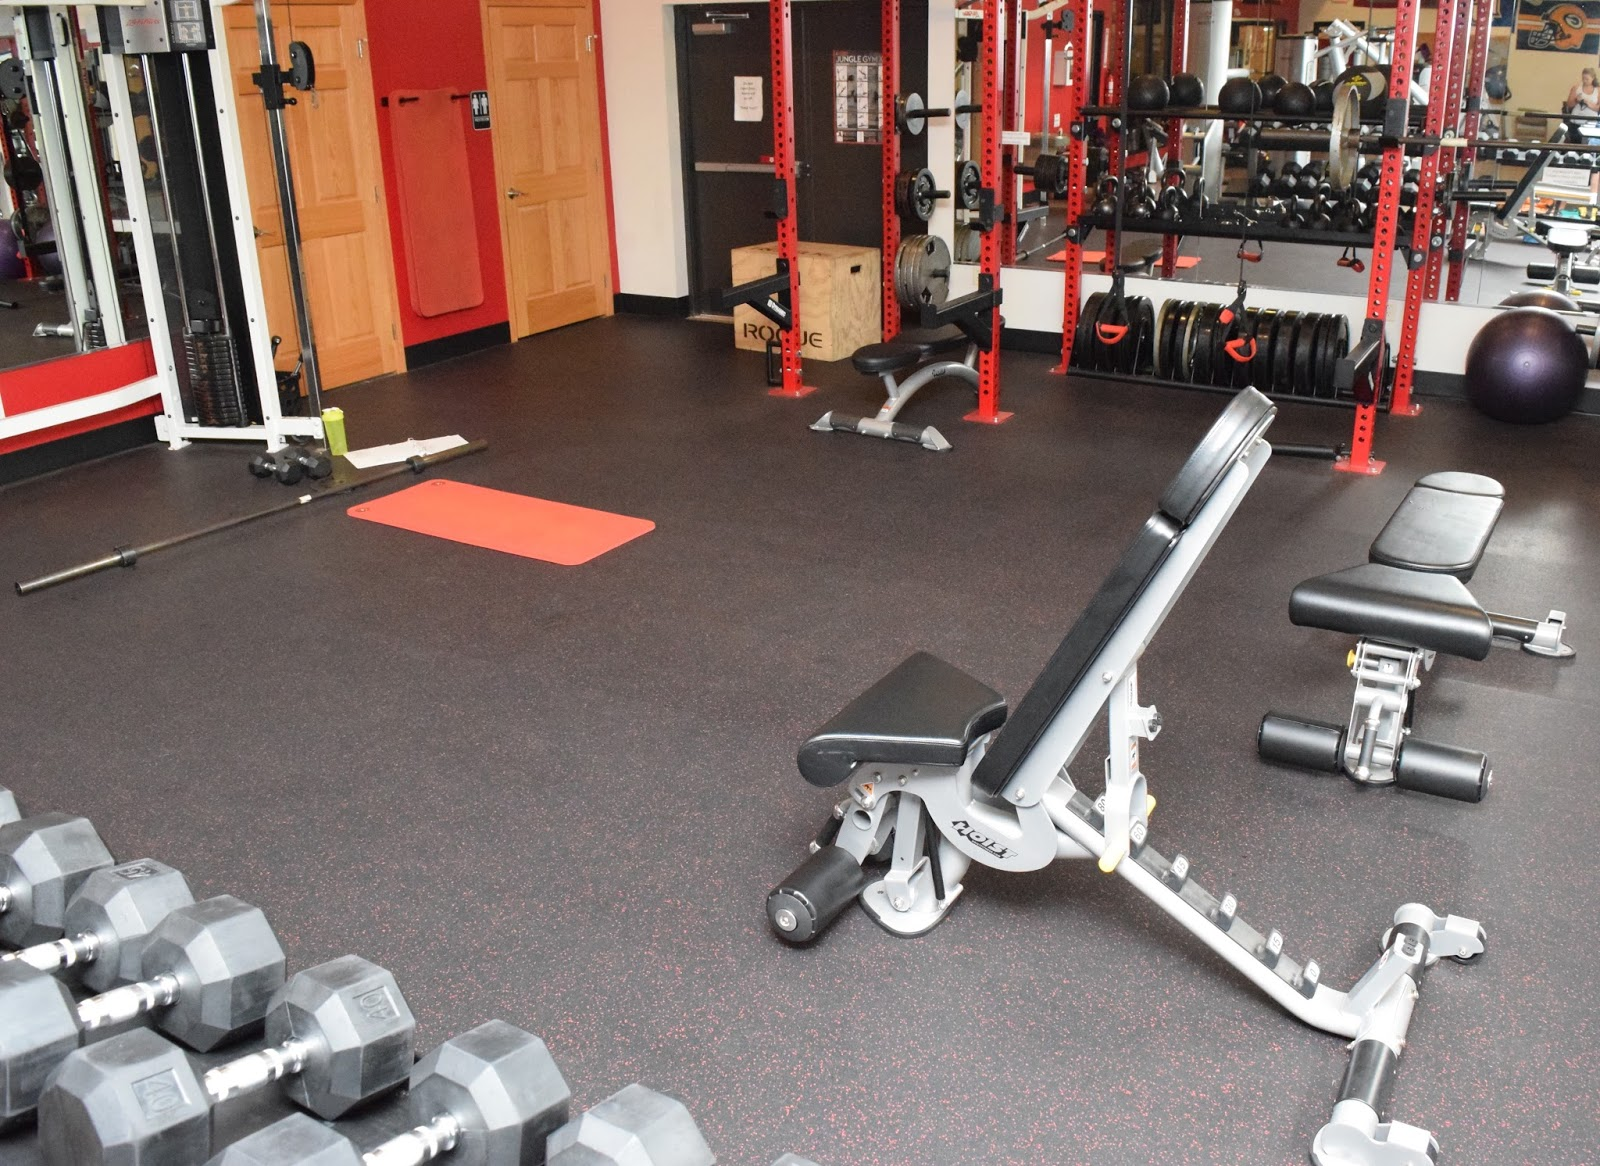 Rubber zebra floor mats - Greatmats Rolled Rubber Flooring Helps Protect The Floor Below And Adds Sound Buffering Qualities To This Free Weight Area At Dunamis Therapy And Fitness